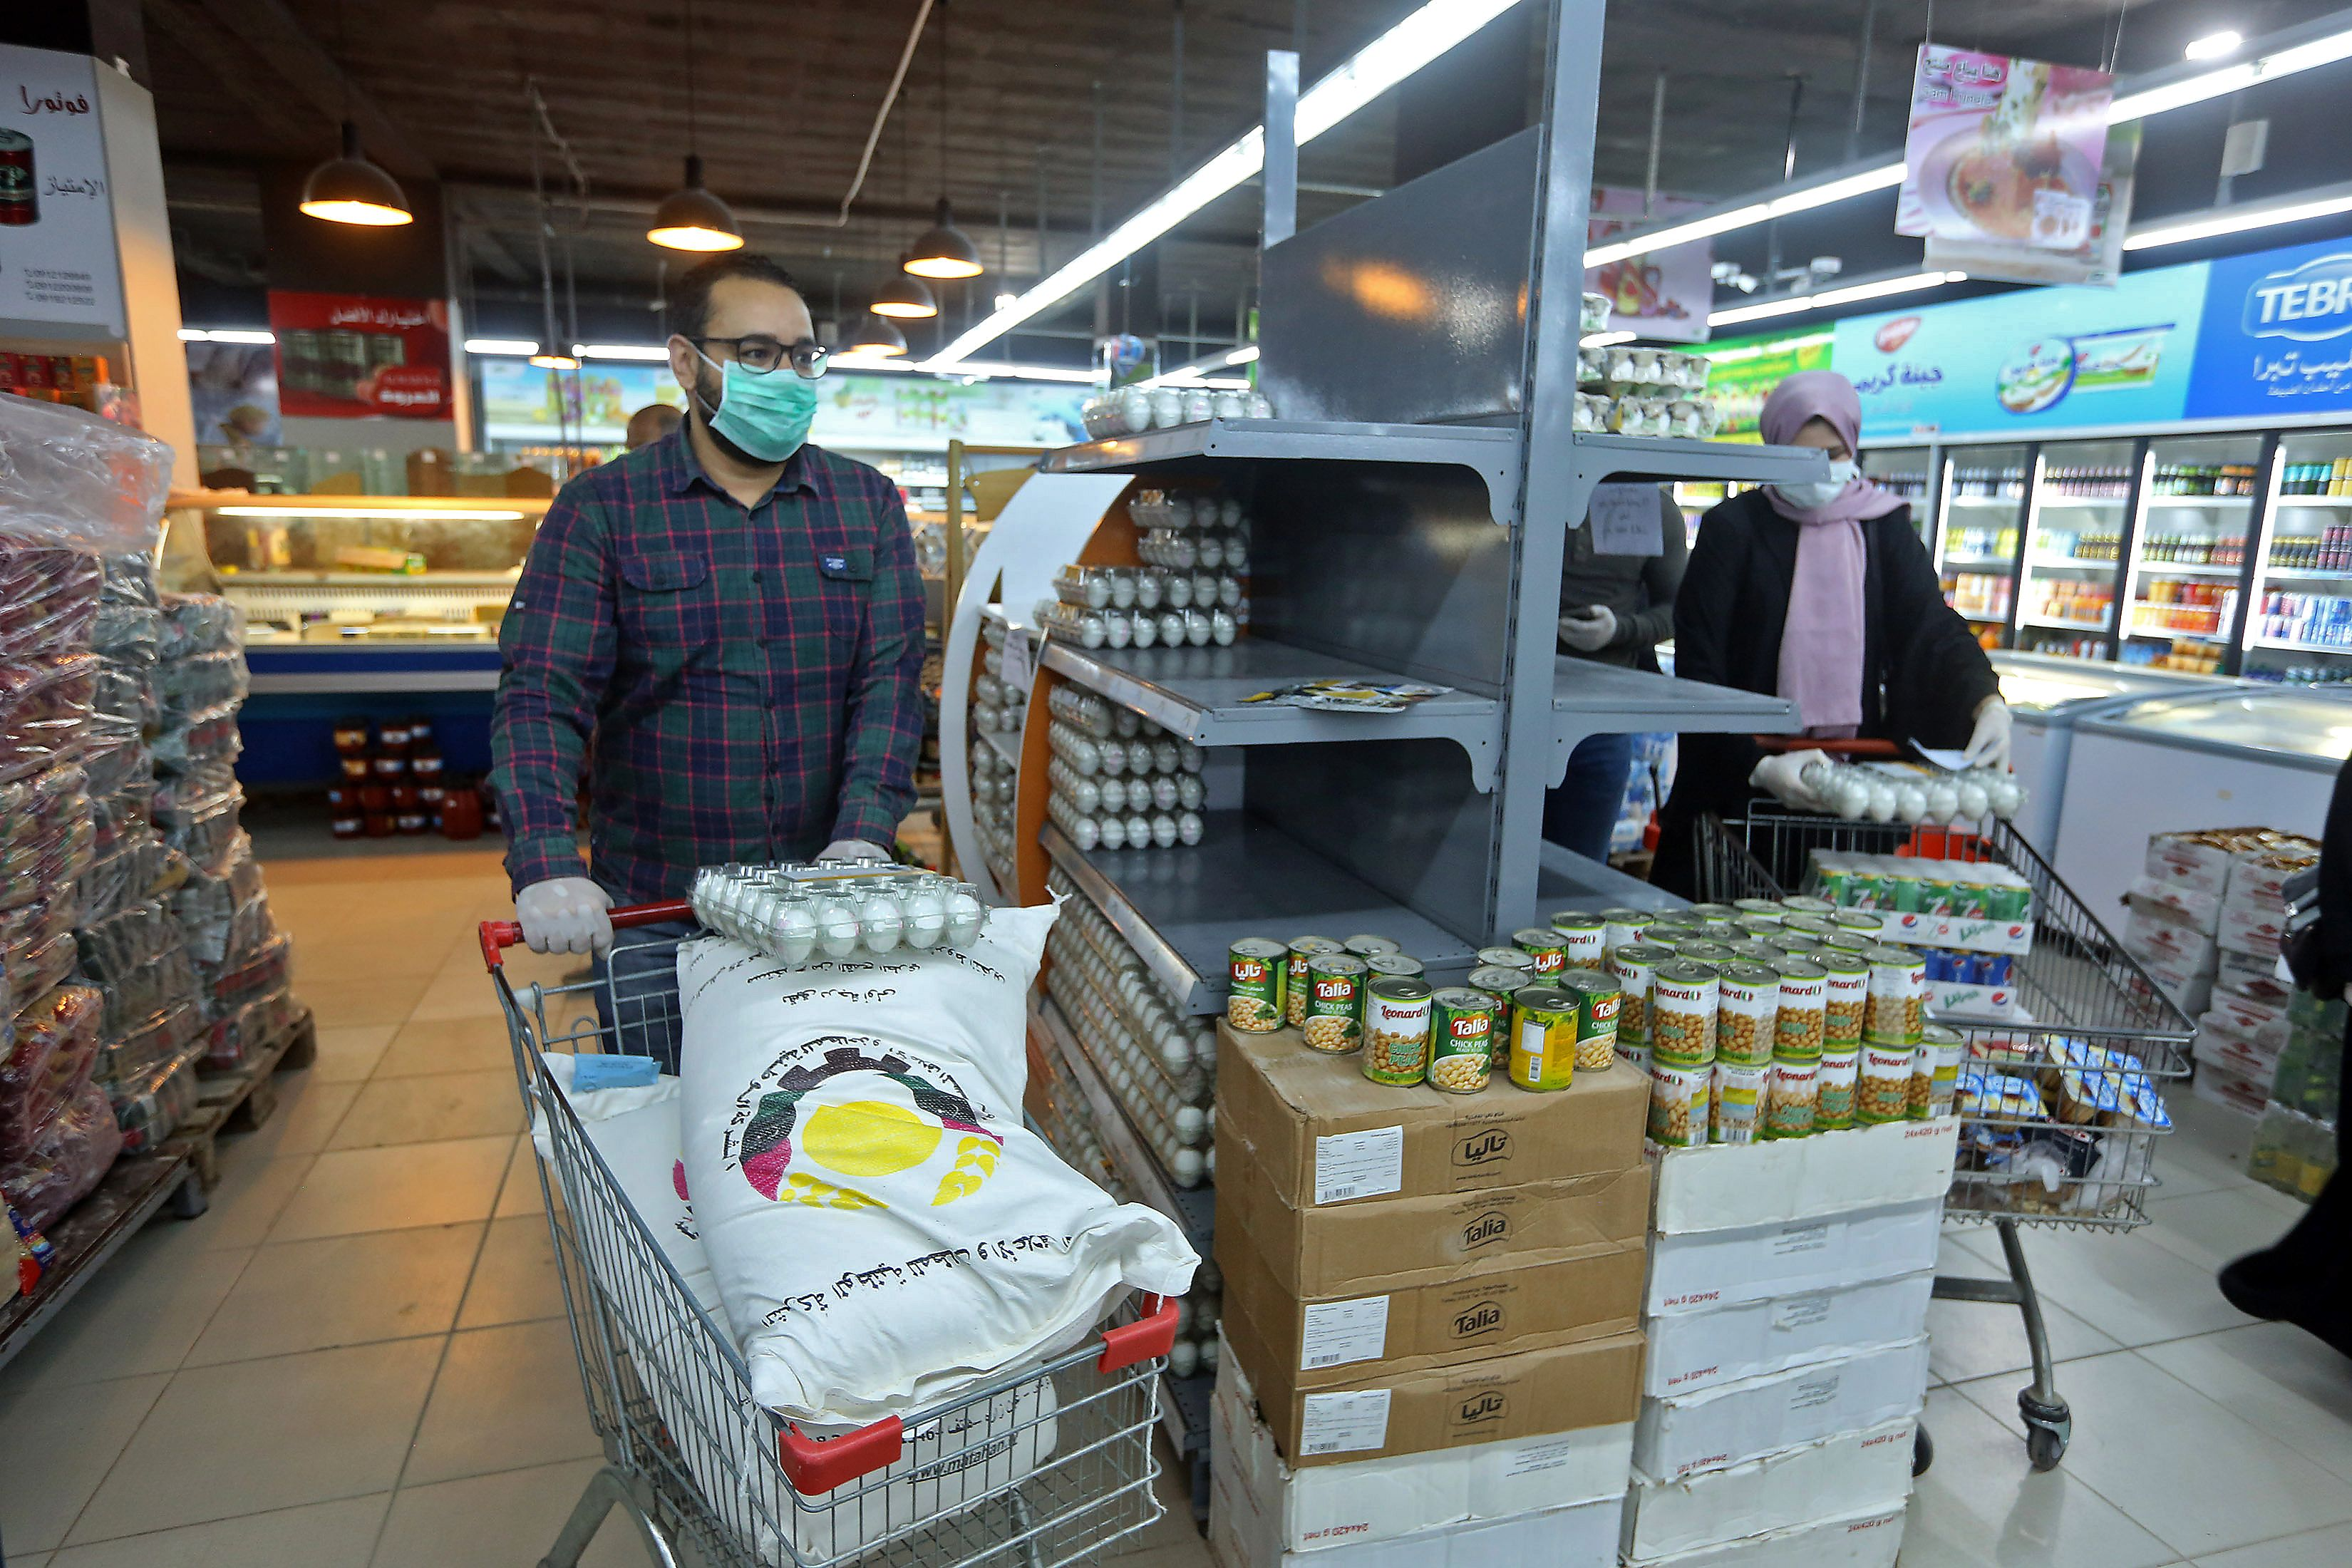 Customers wearing face masks and gloves amid concerns over the spread of the COVID-19 coronavirus, shop at a supermarket in the Libyan capital on March 25, 2020. - Libya has reported its first case of the novel coronavirus, a particular source of concern in the North African country where civil war has badly degraded the public healthcare system. (Photo by Mahmud TURKIA / AFP) (Photo by MAHMUD TURKIA/AFP via Getty Images)